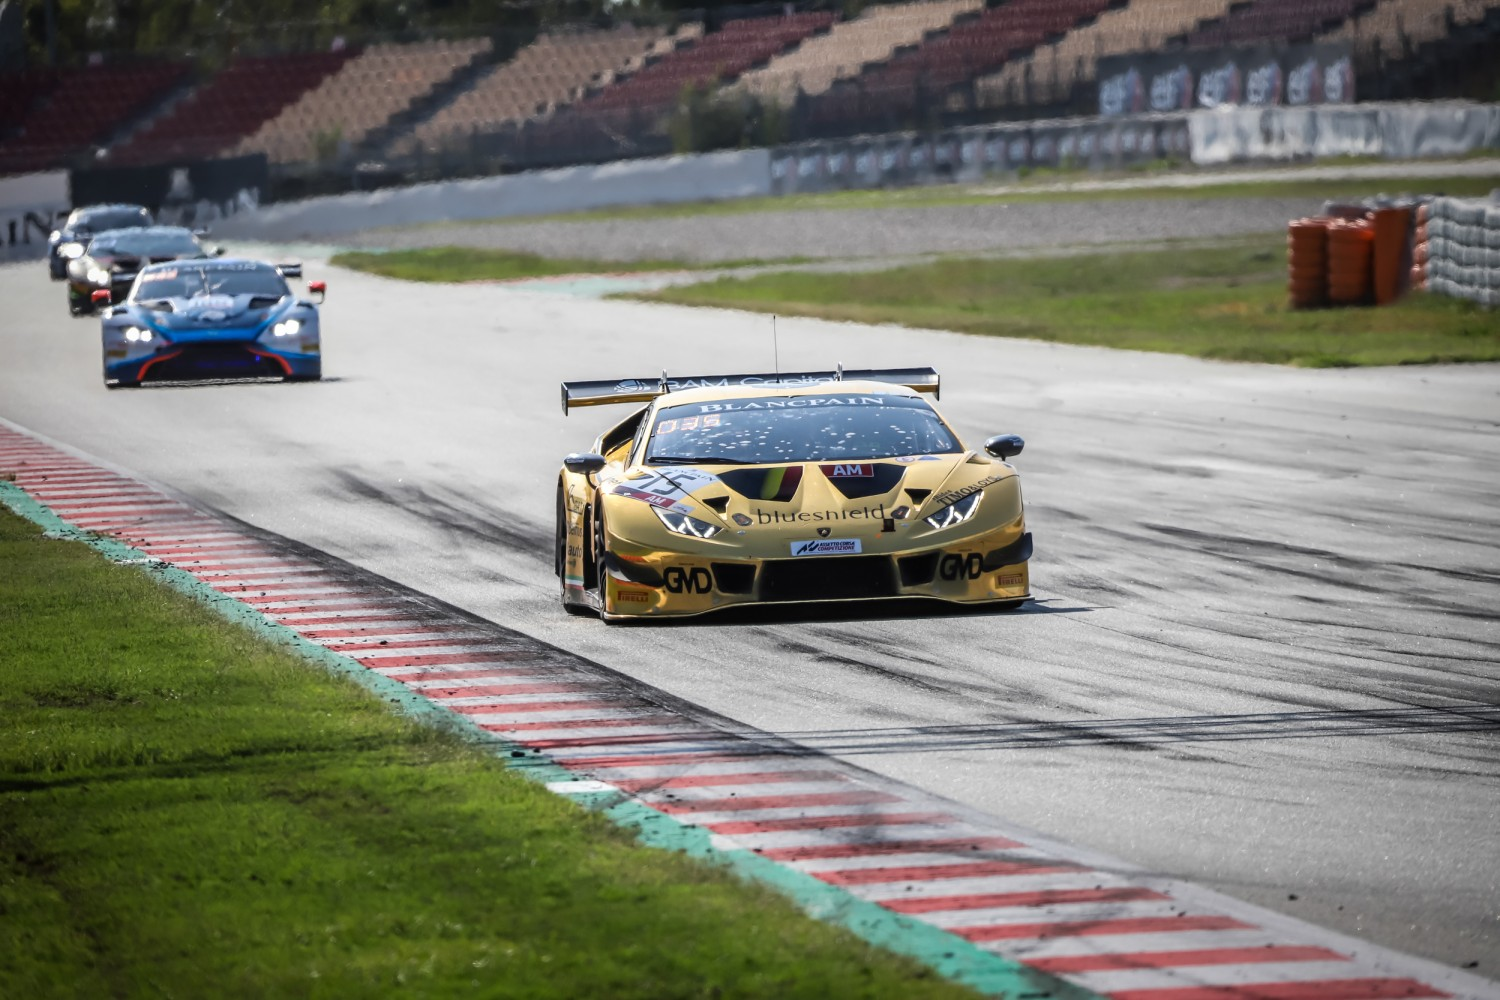 #15 Boutsen Ginion BEL Lamborghini Huracan GT3 2019 Claude-Yves Gosselin FRA Marc Rostan FRA Renaud Kuppens BEL Am Cup, Pre-Qualifying  | SRO / Patrick Hecq Photography